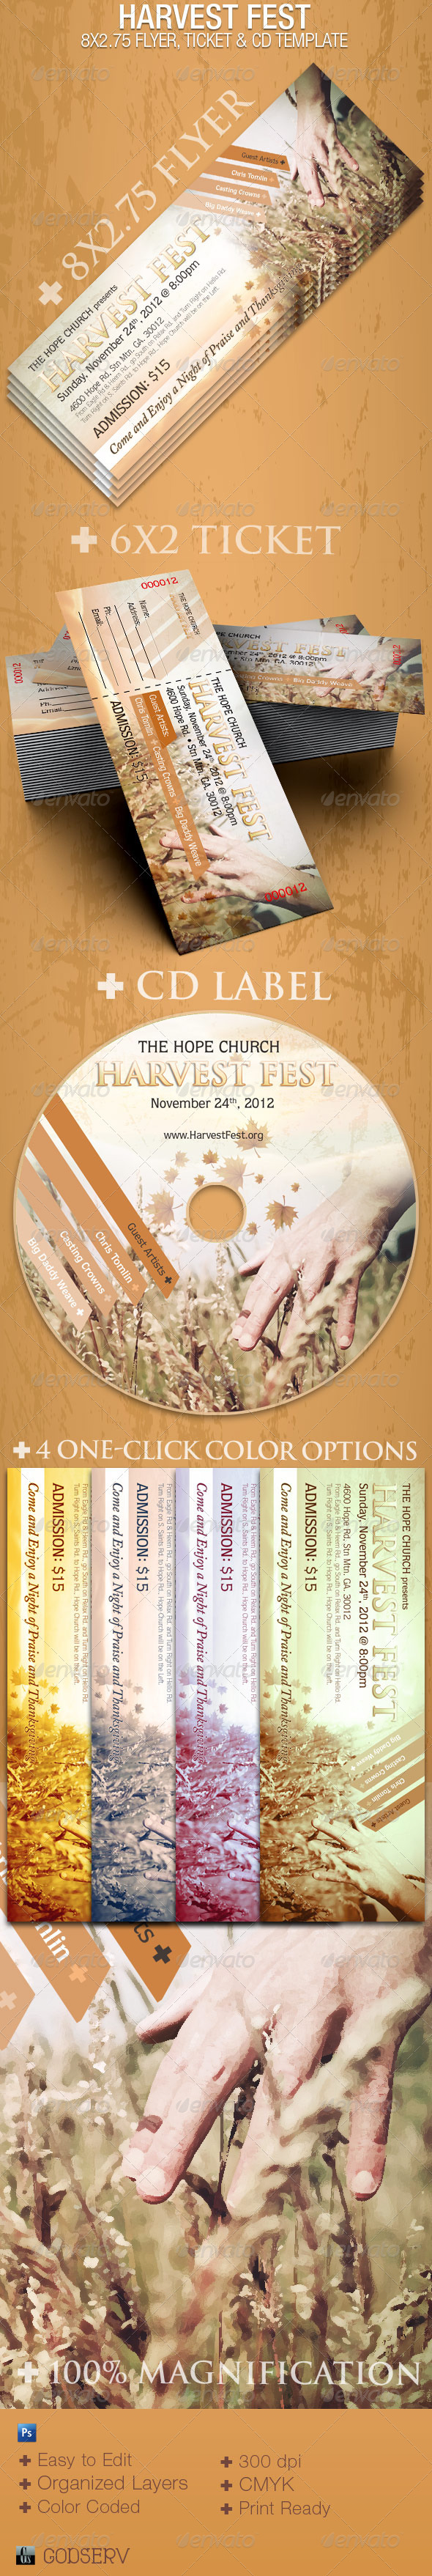 Harvest Fest Photoshop 8x2.75 Flyer Template - Church Flyers